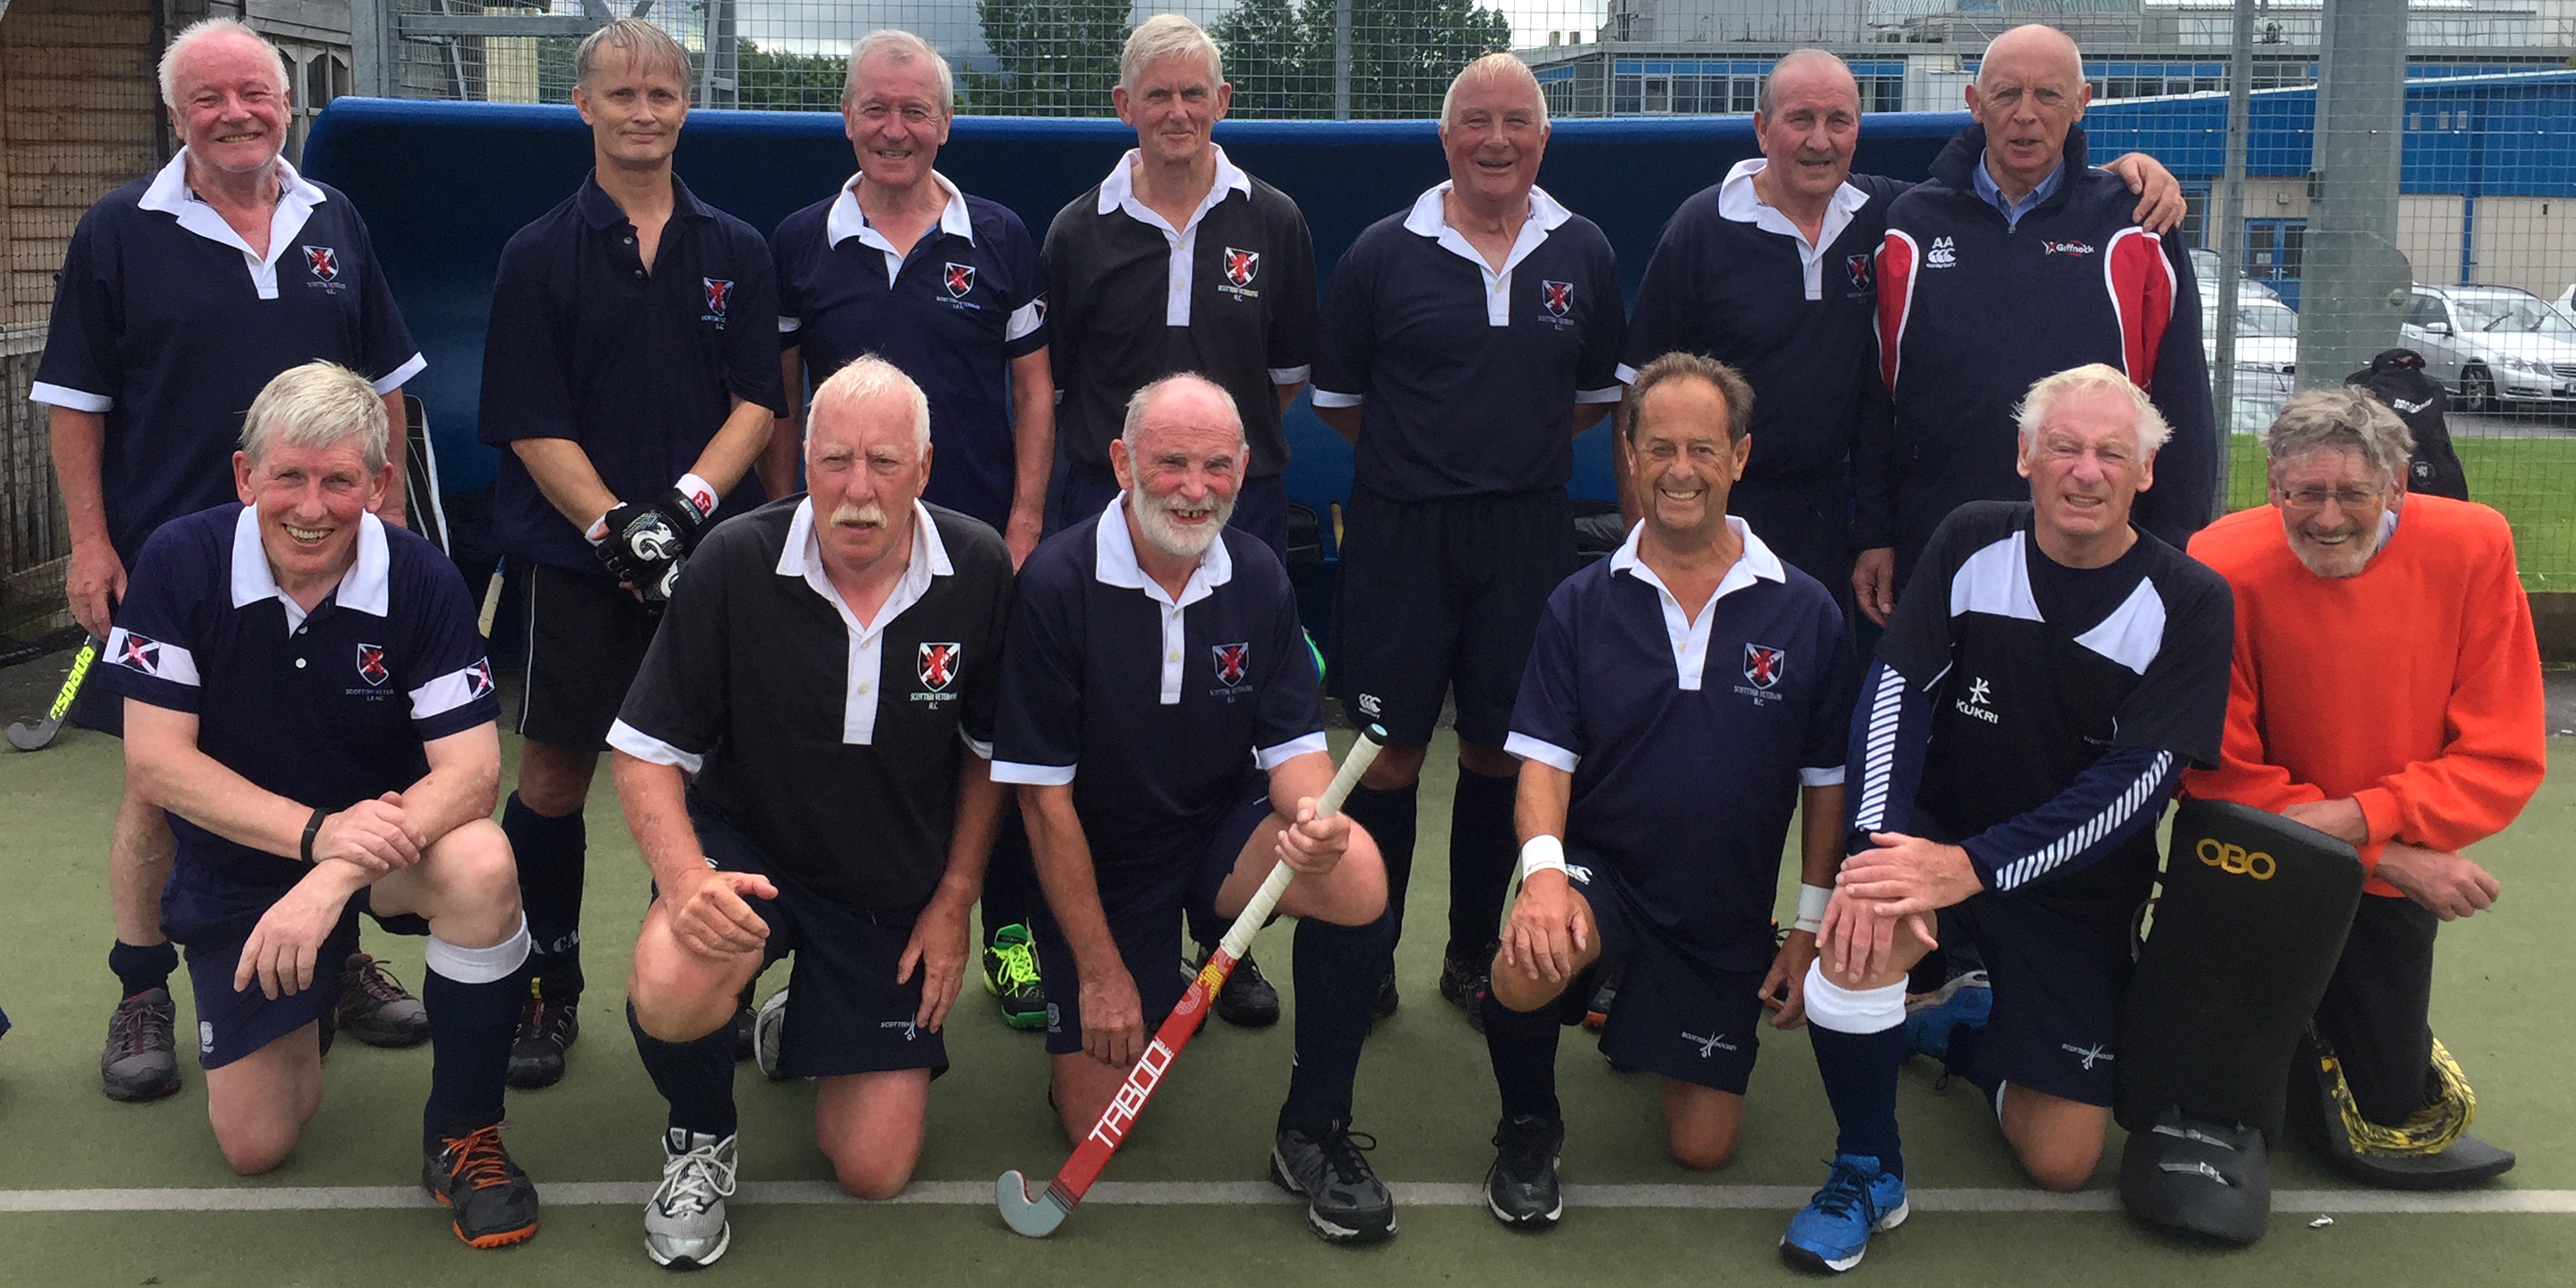 Scottish Thistles Over 70 squad Cockermouth July 2017